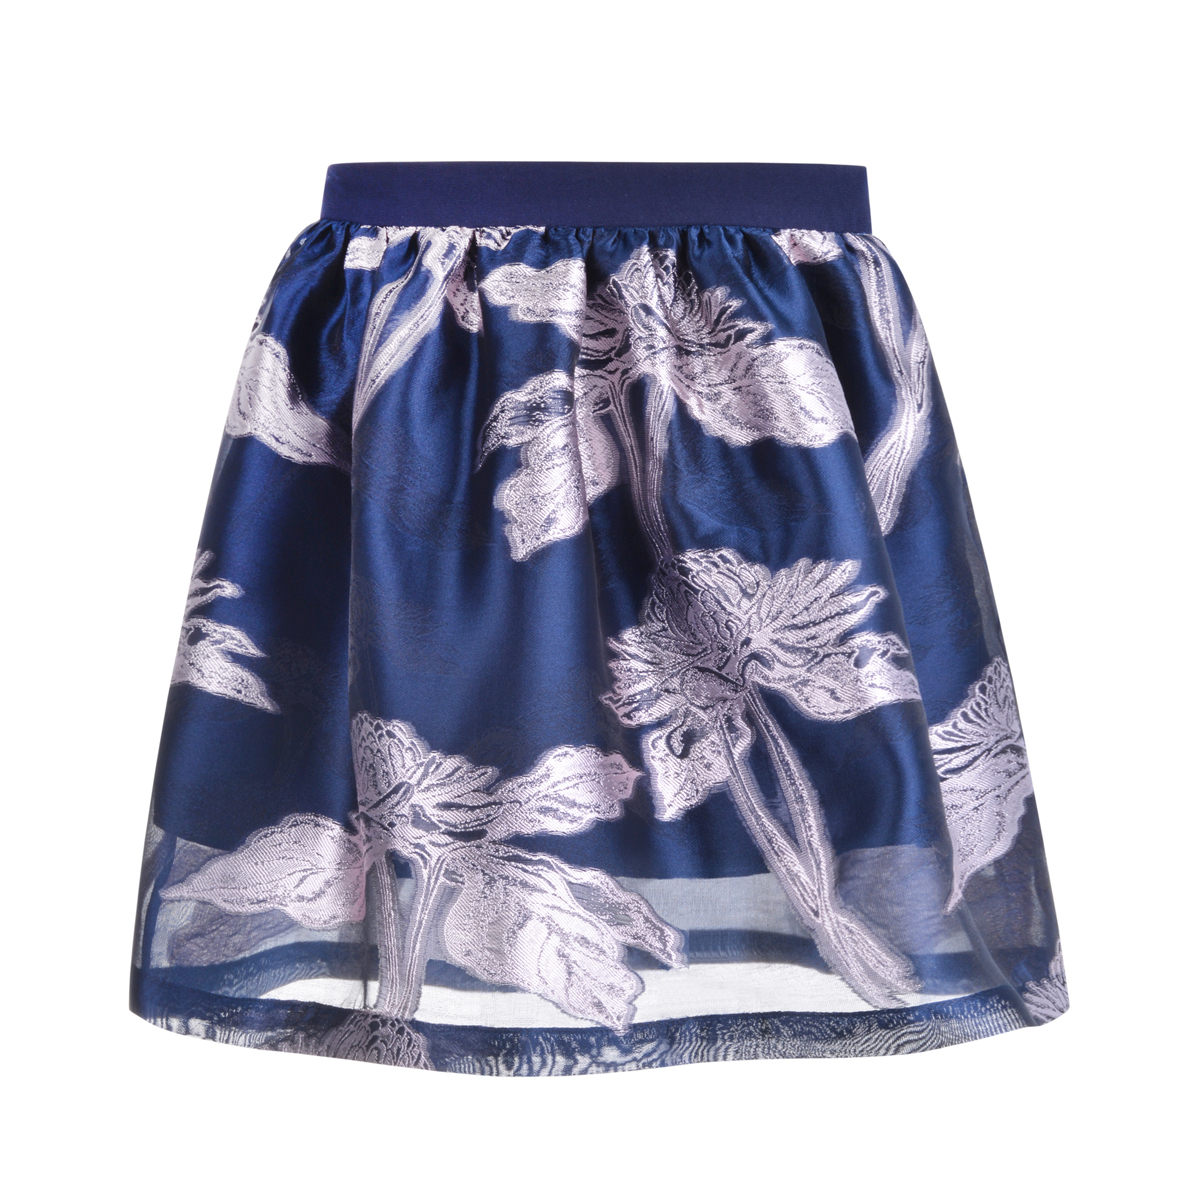 Hucklebones Nouveau Jacquard Skirt in Midnight Frost